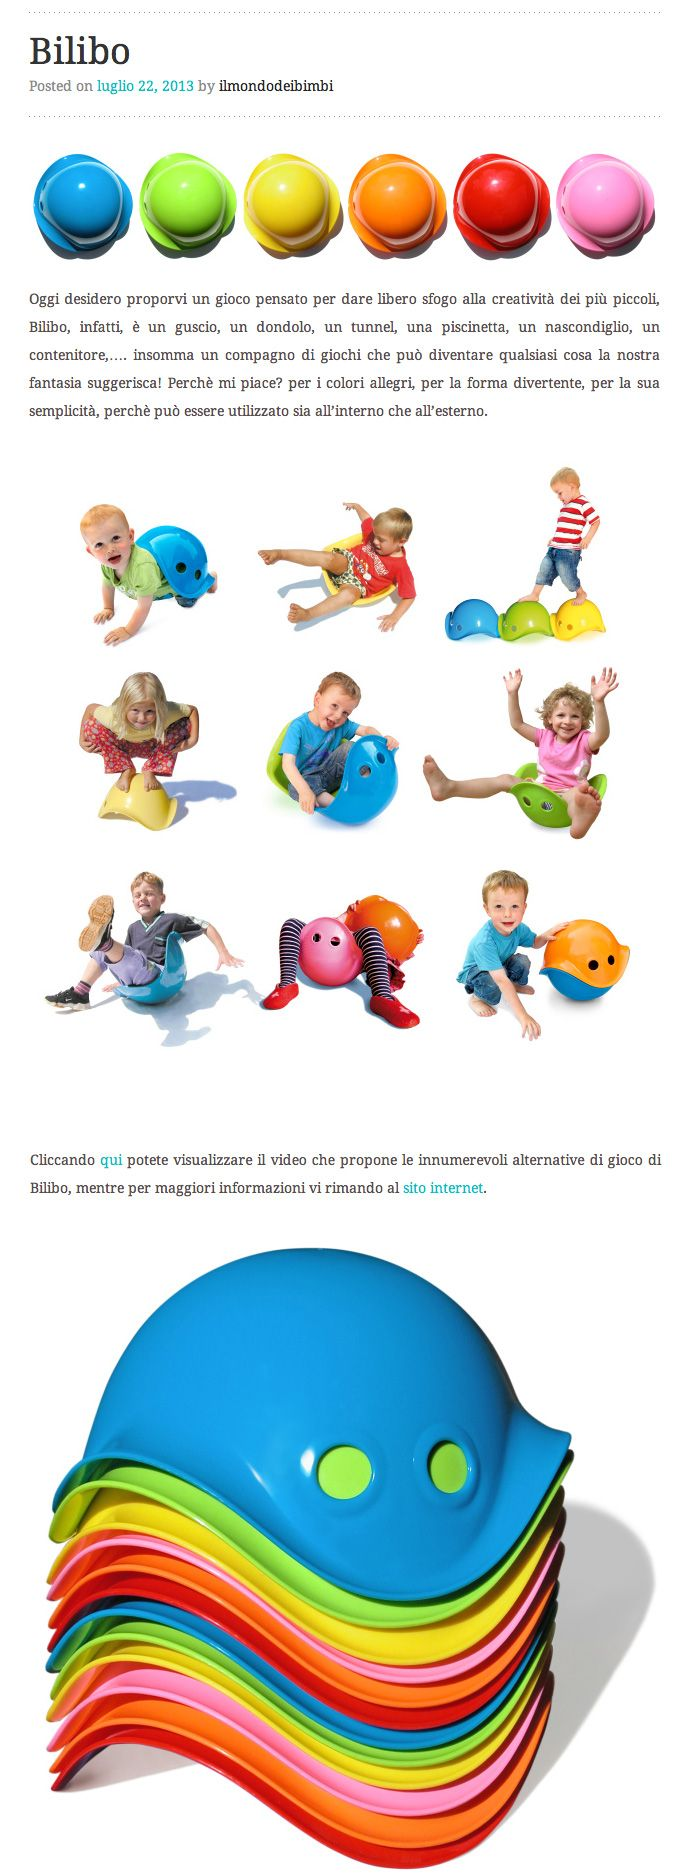 Bilibo Toy Review : Best images about reviews and press on pinterest kid